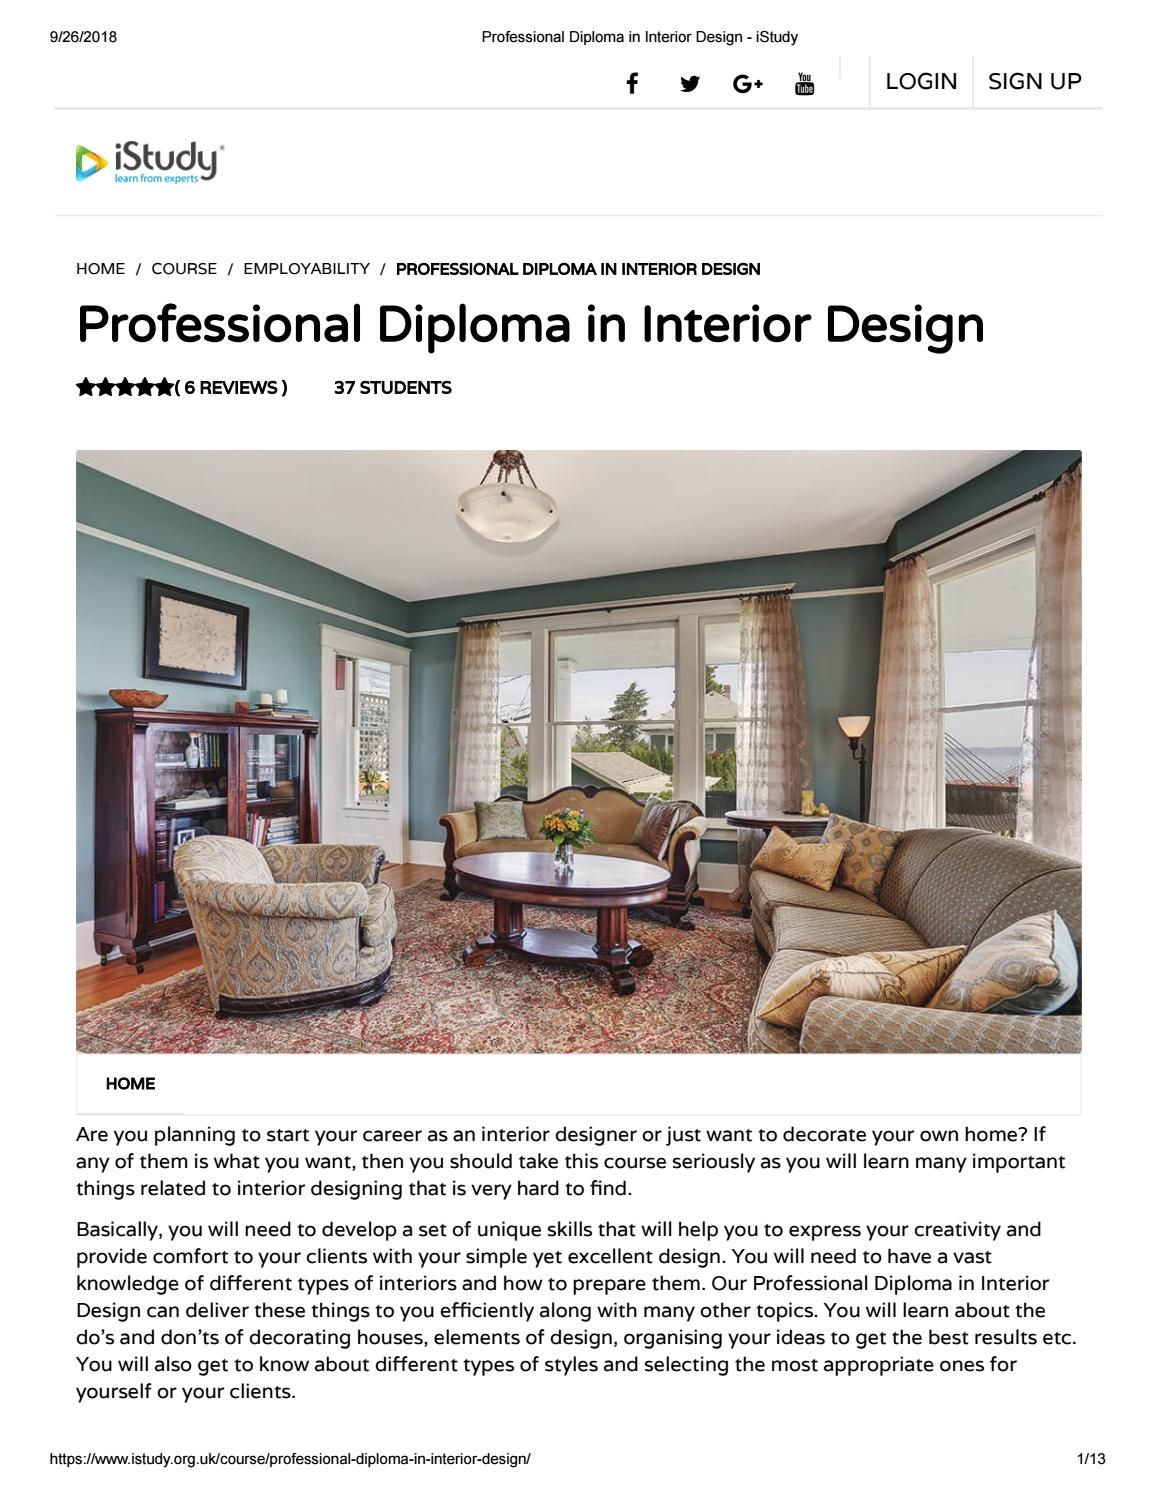 Professional diploma in interior design istudy courses pinterest and also rh